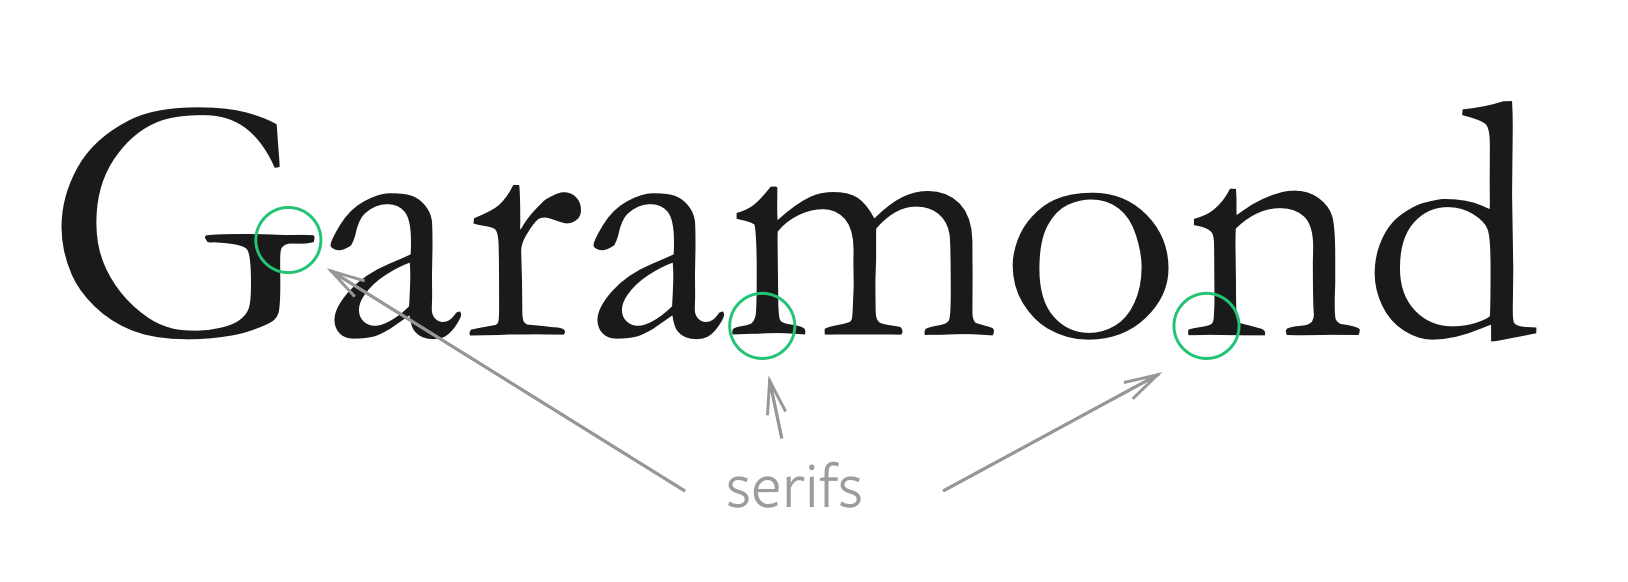 Image of Garamond typeface that contains serifs